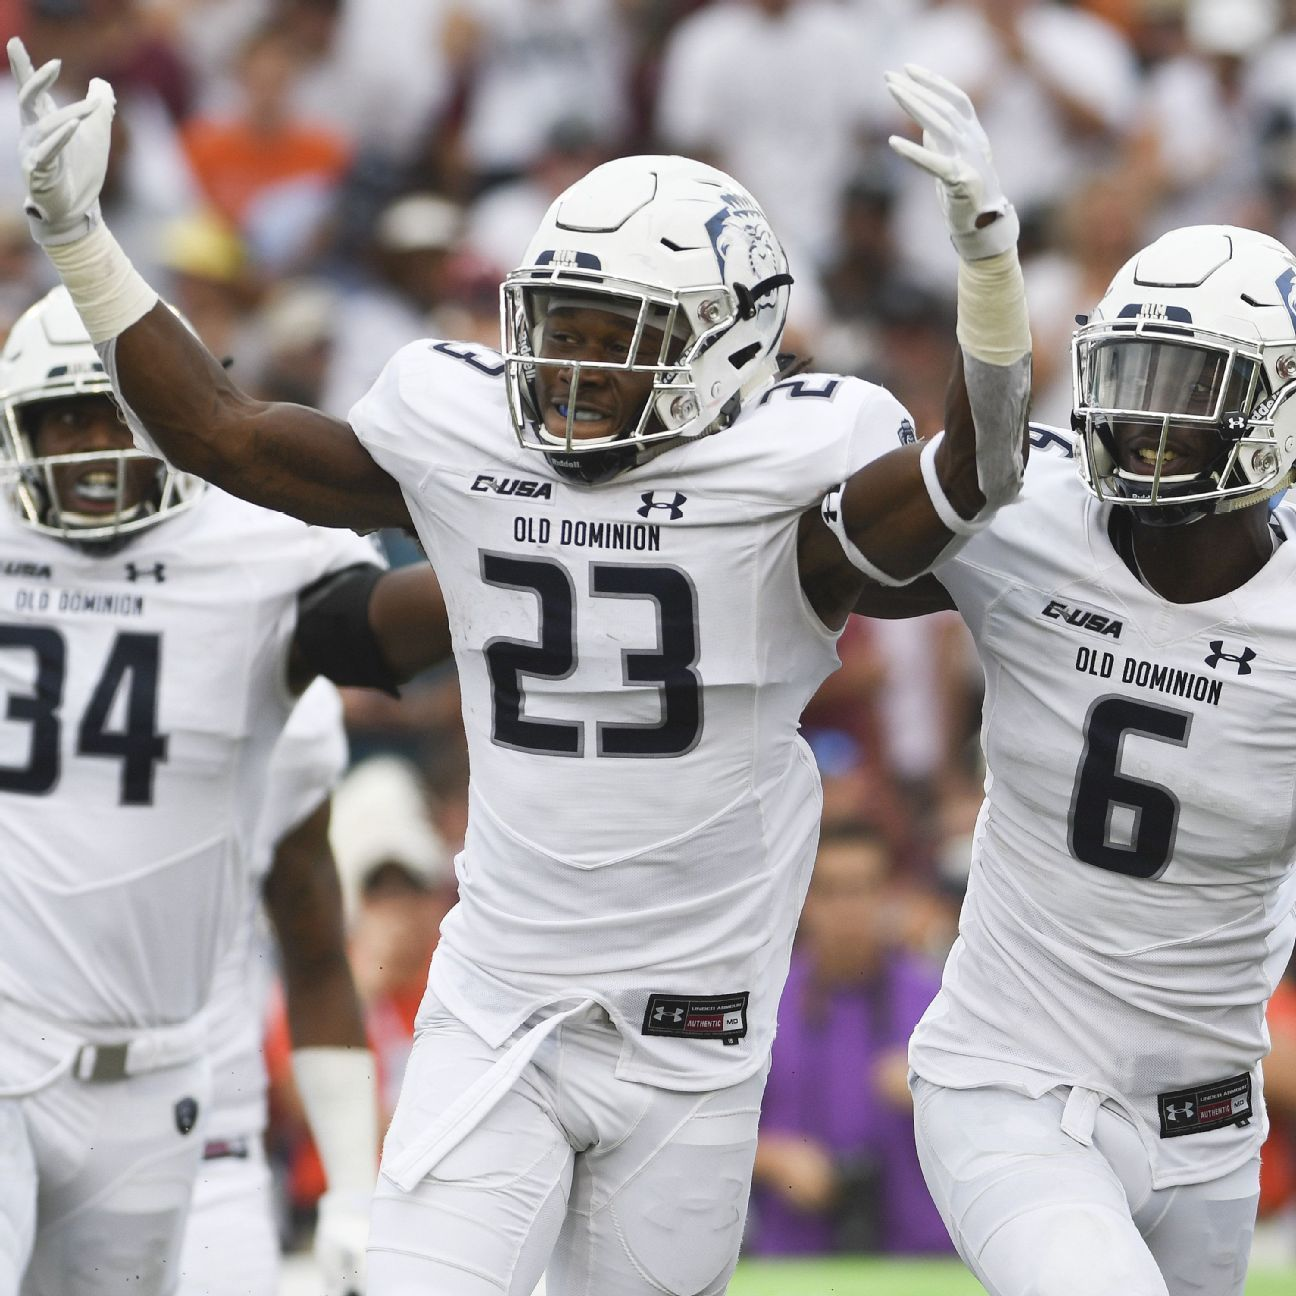 ODU's Miracle